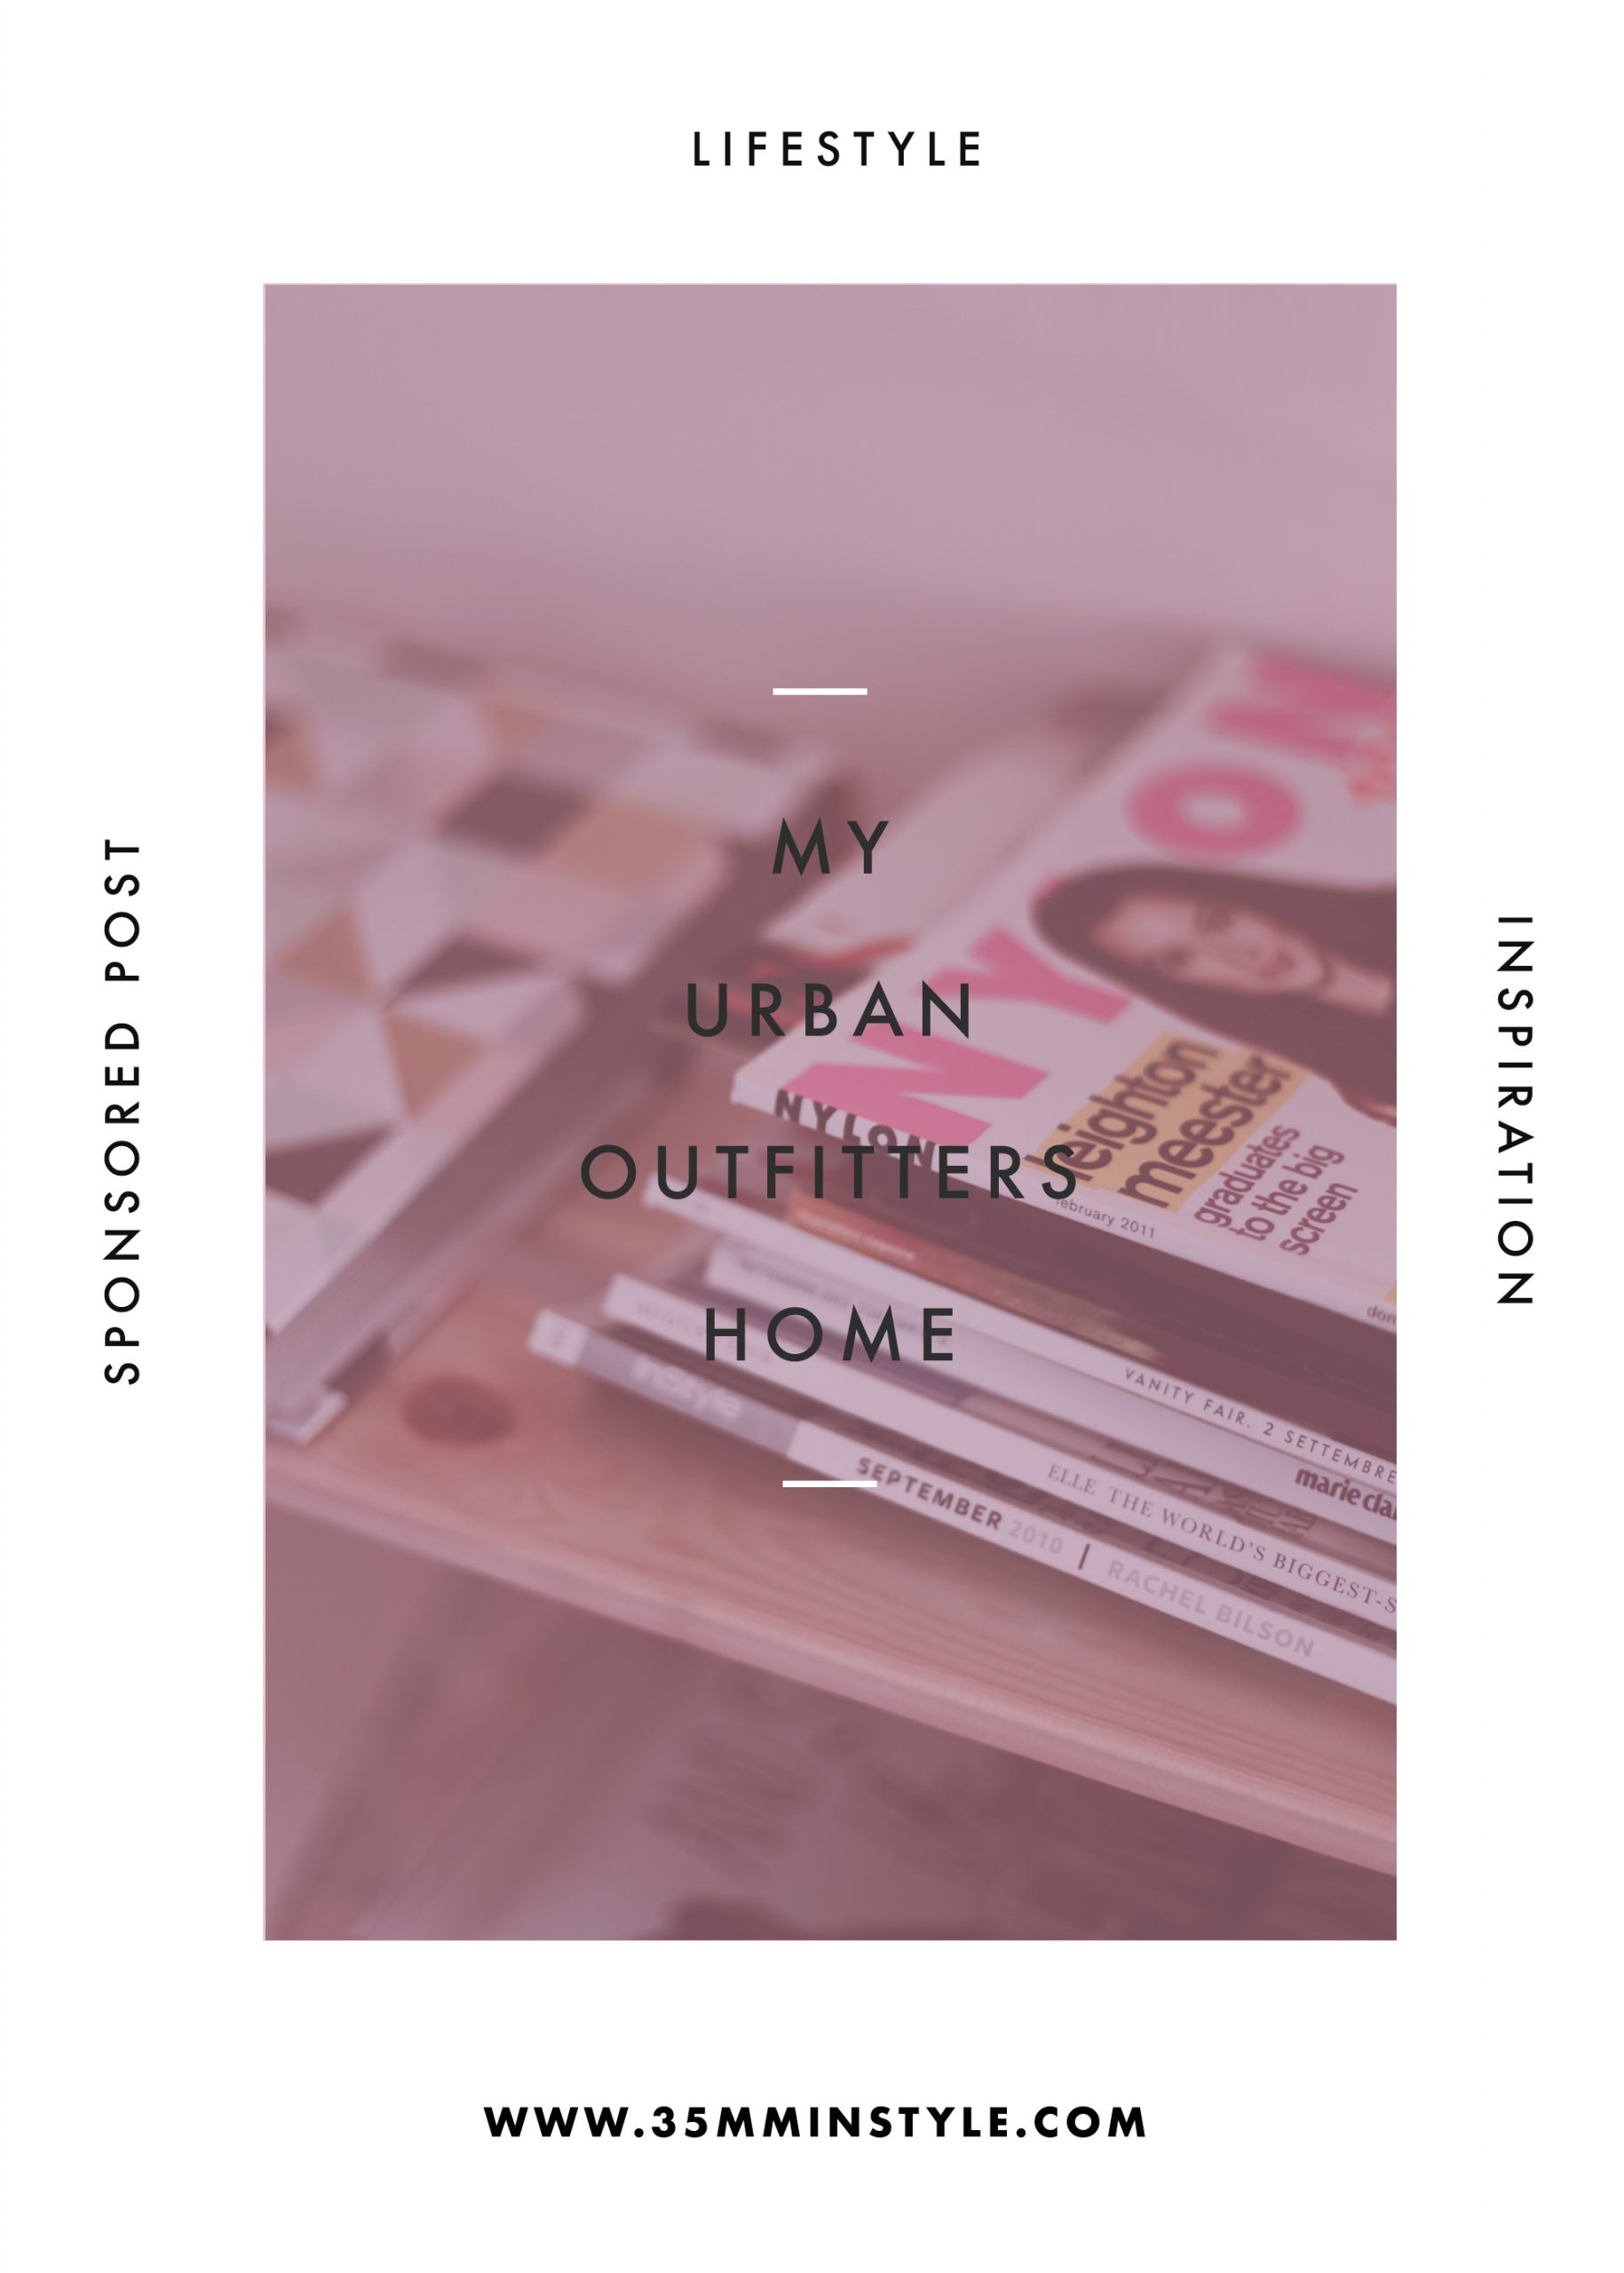 My Urban Outfitters Home 35mminstyle